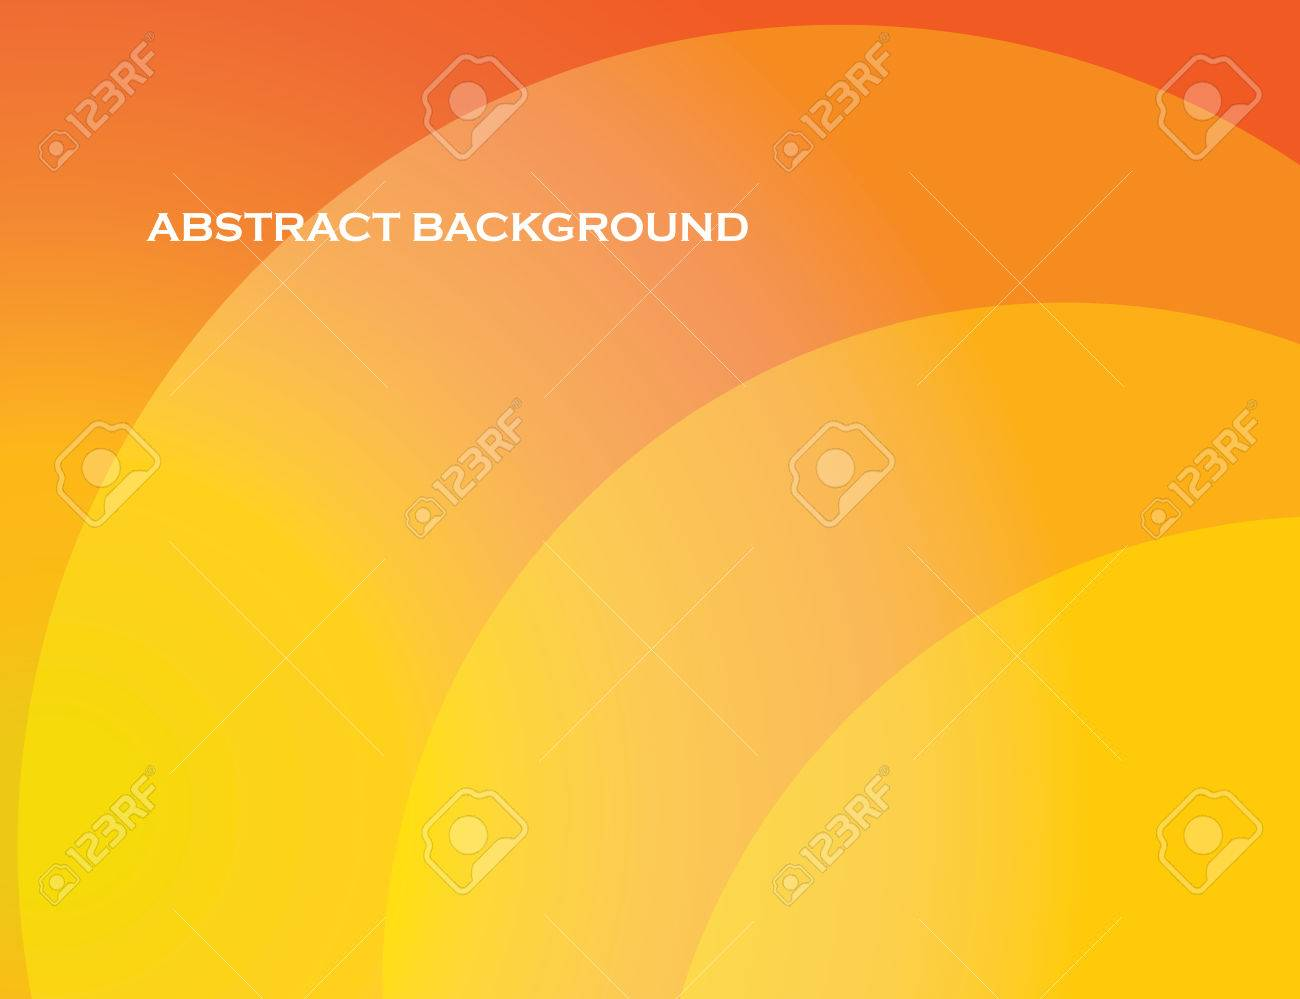 Abstract Solid Art Designs